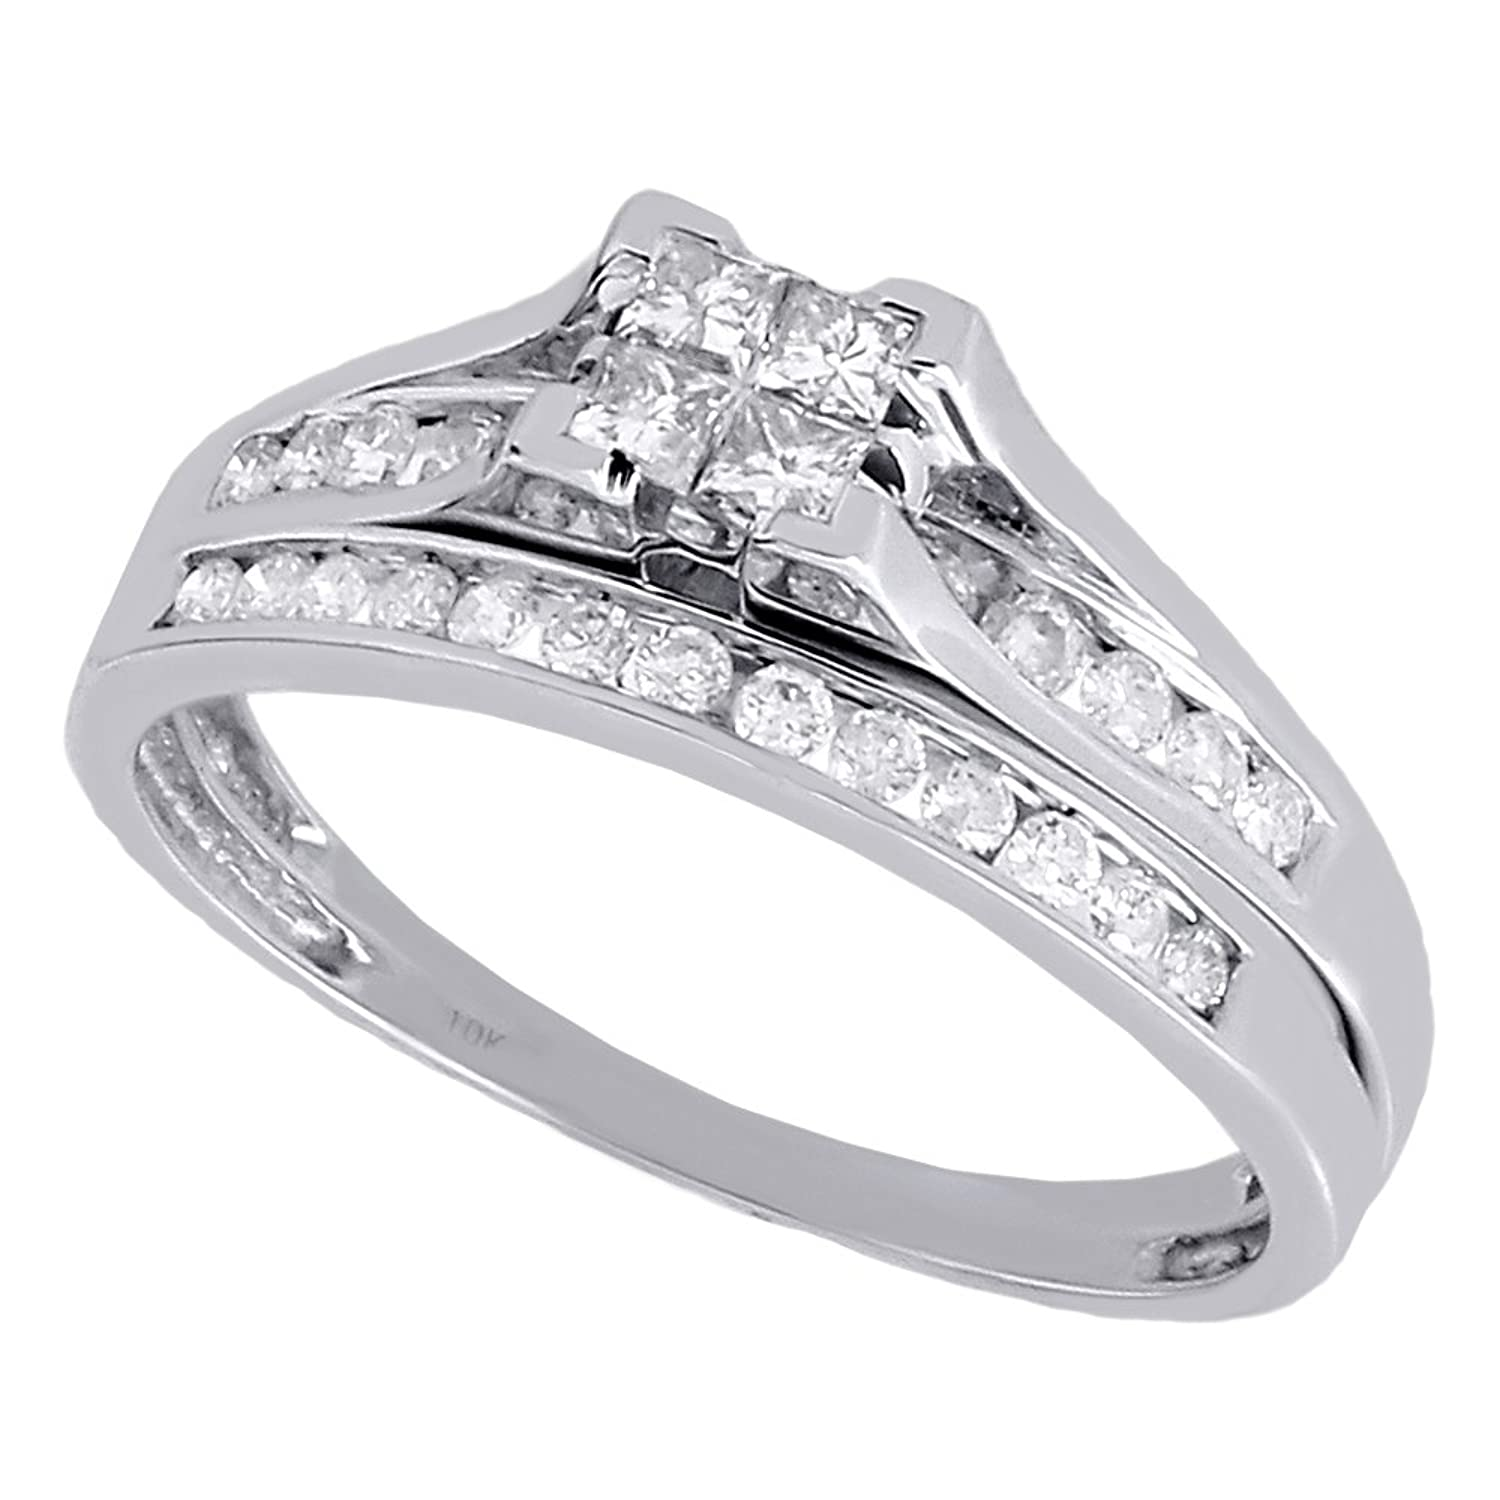 amazoncom 10k white gold quad princess cut diamond engagement ring bridal set 047 cttw jewelry - Dolphin Wedding Rings